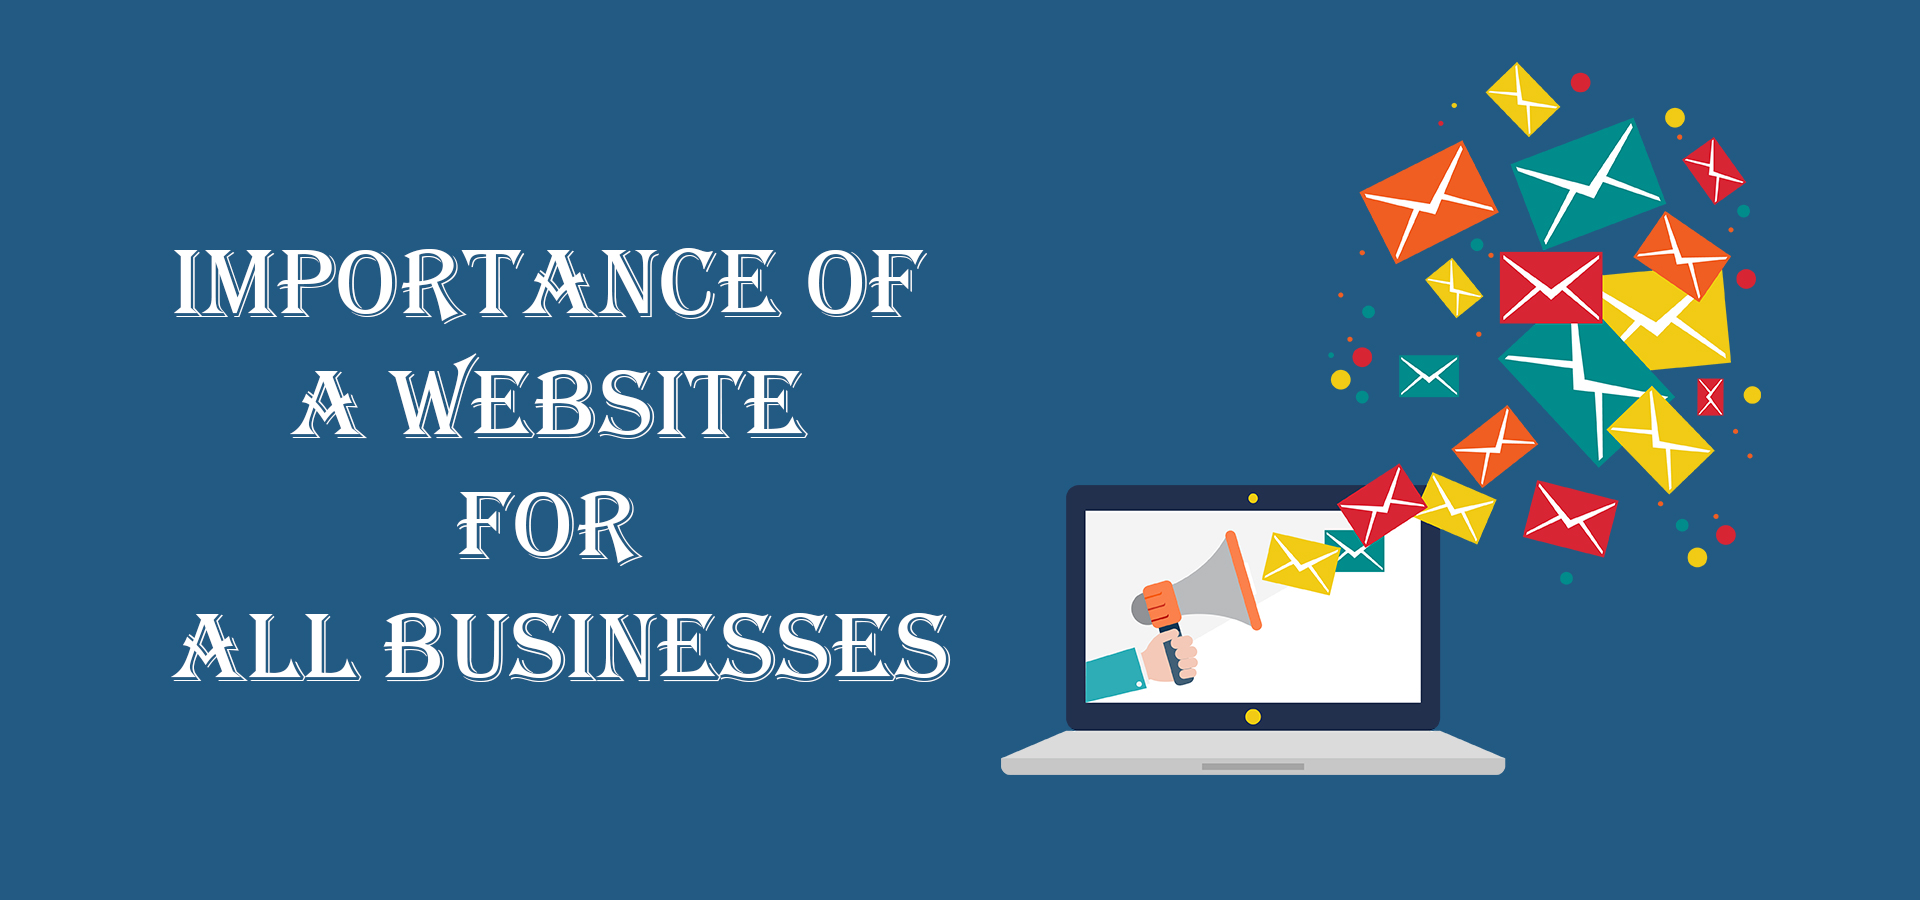 Benefits of website for your businesses